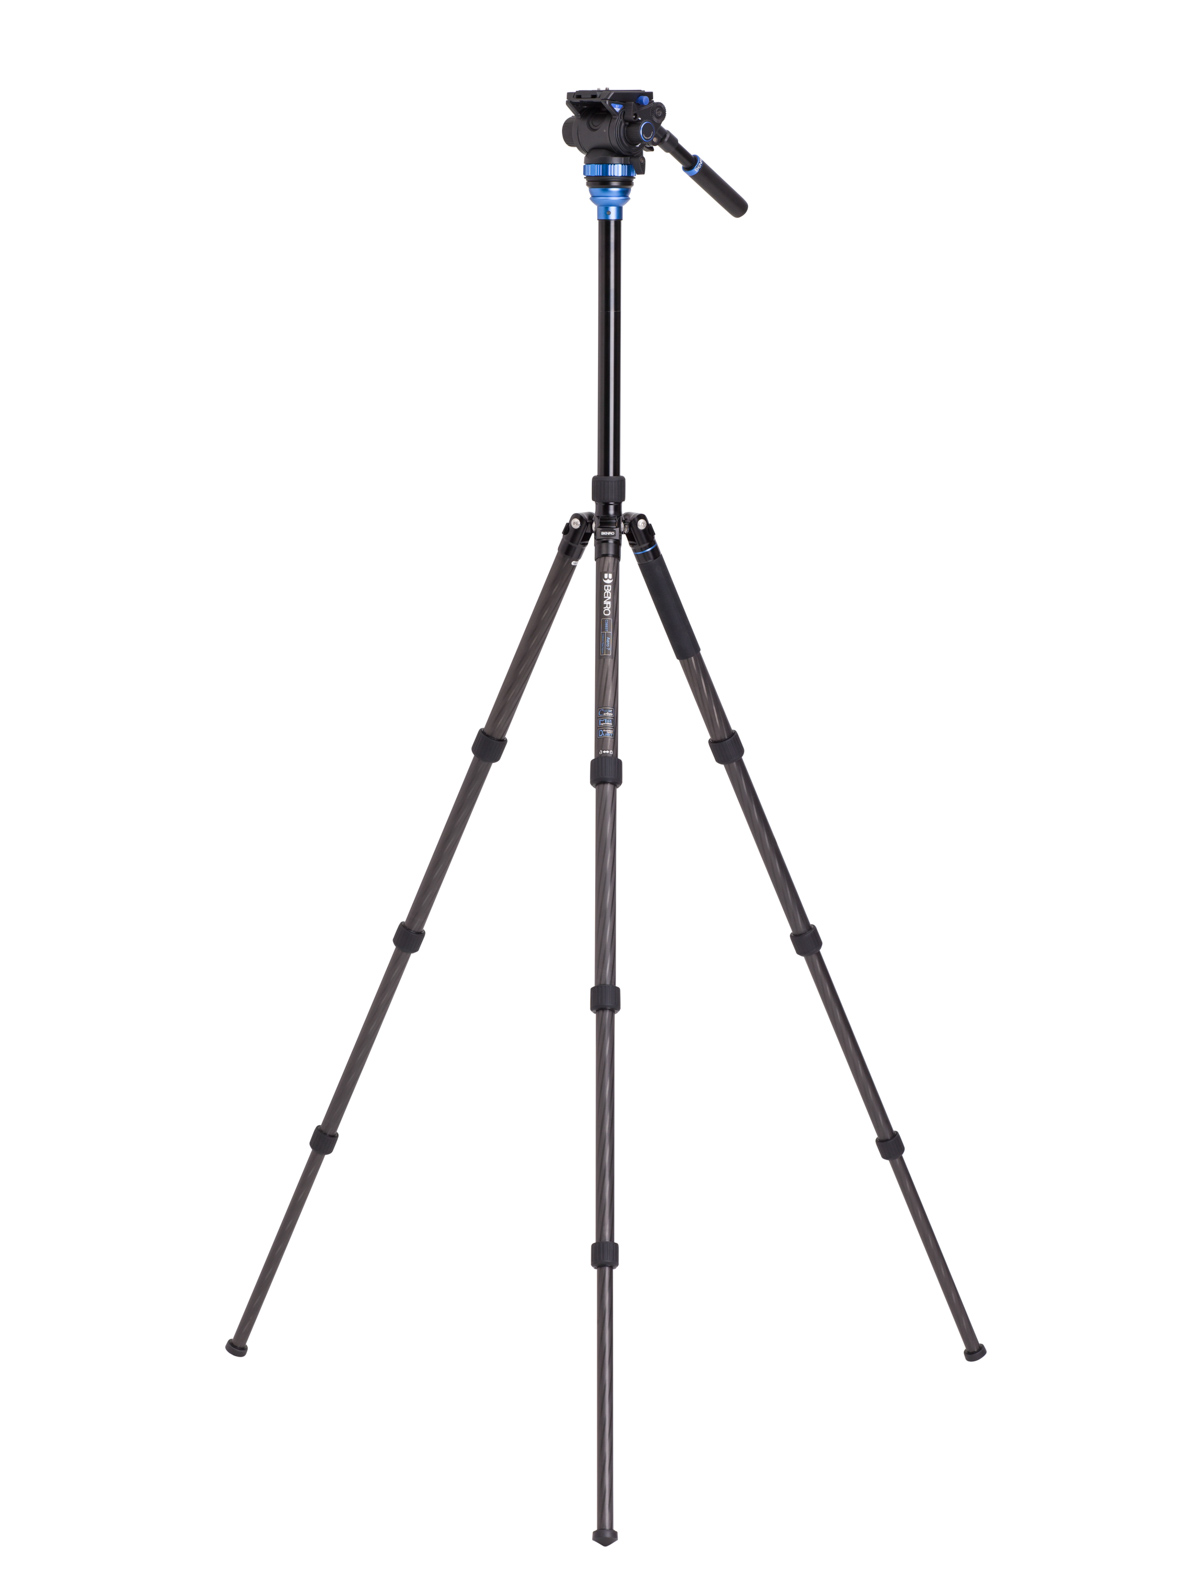 Benro Aero 7 Travel Video Tripod Carbon Fiber